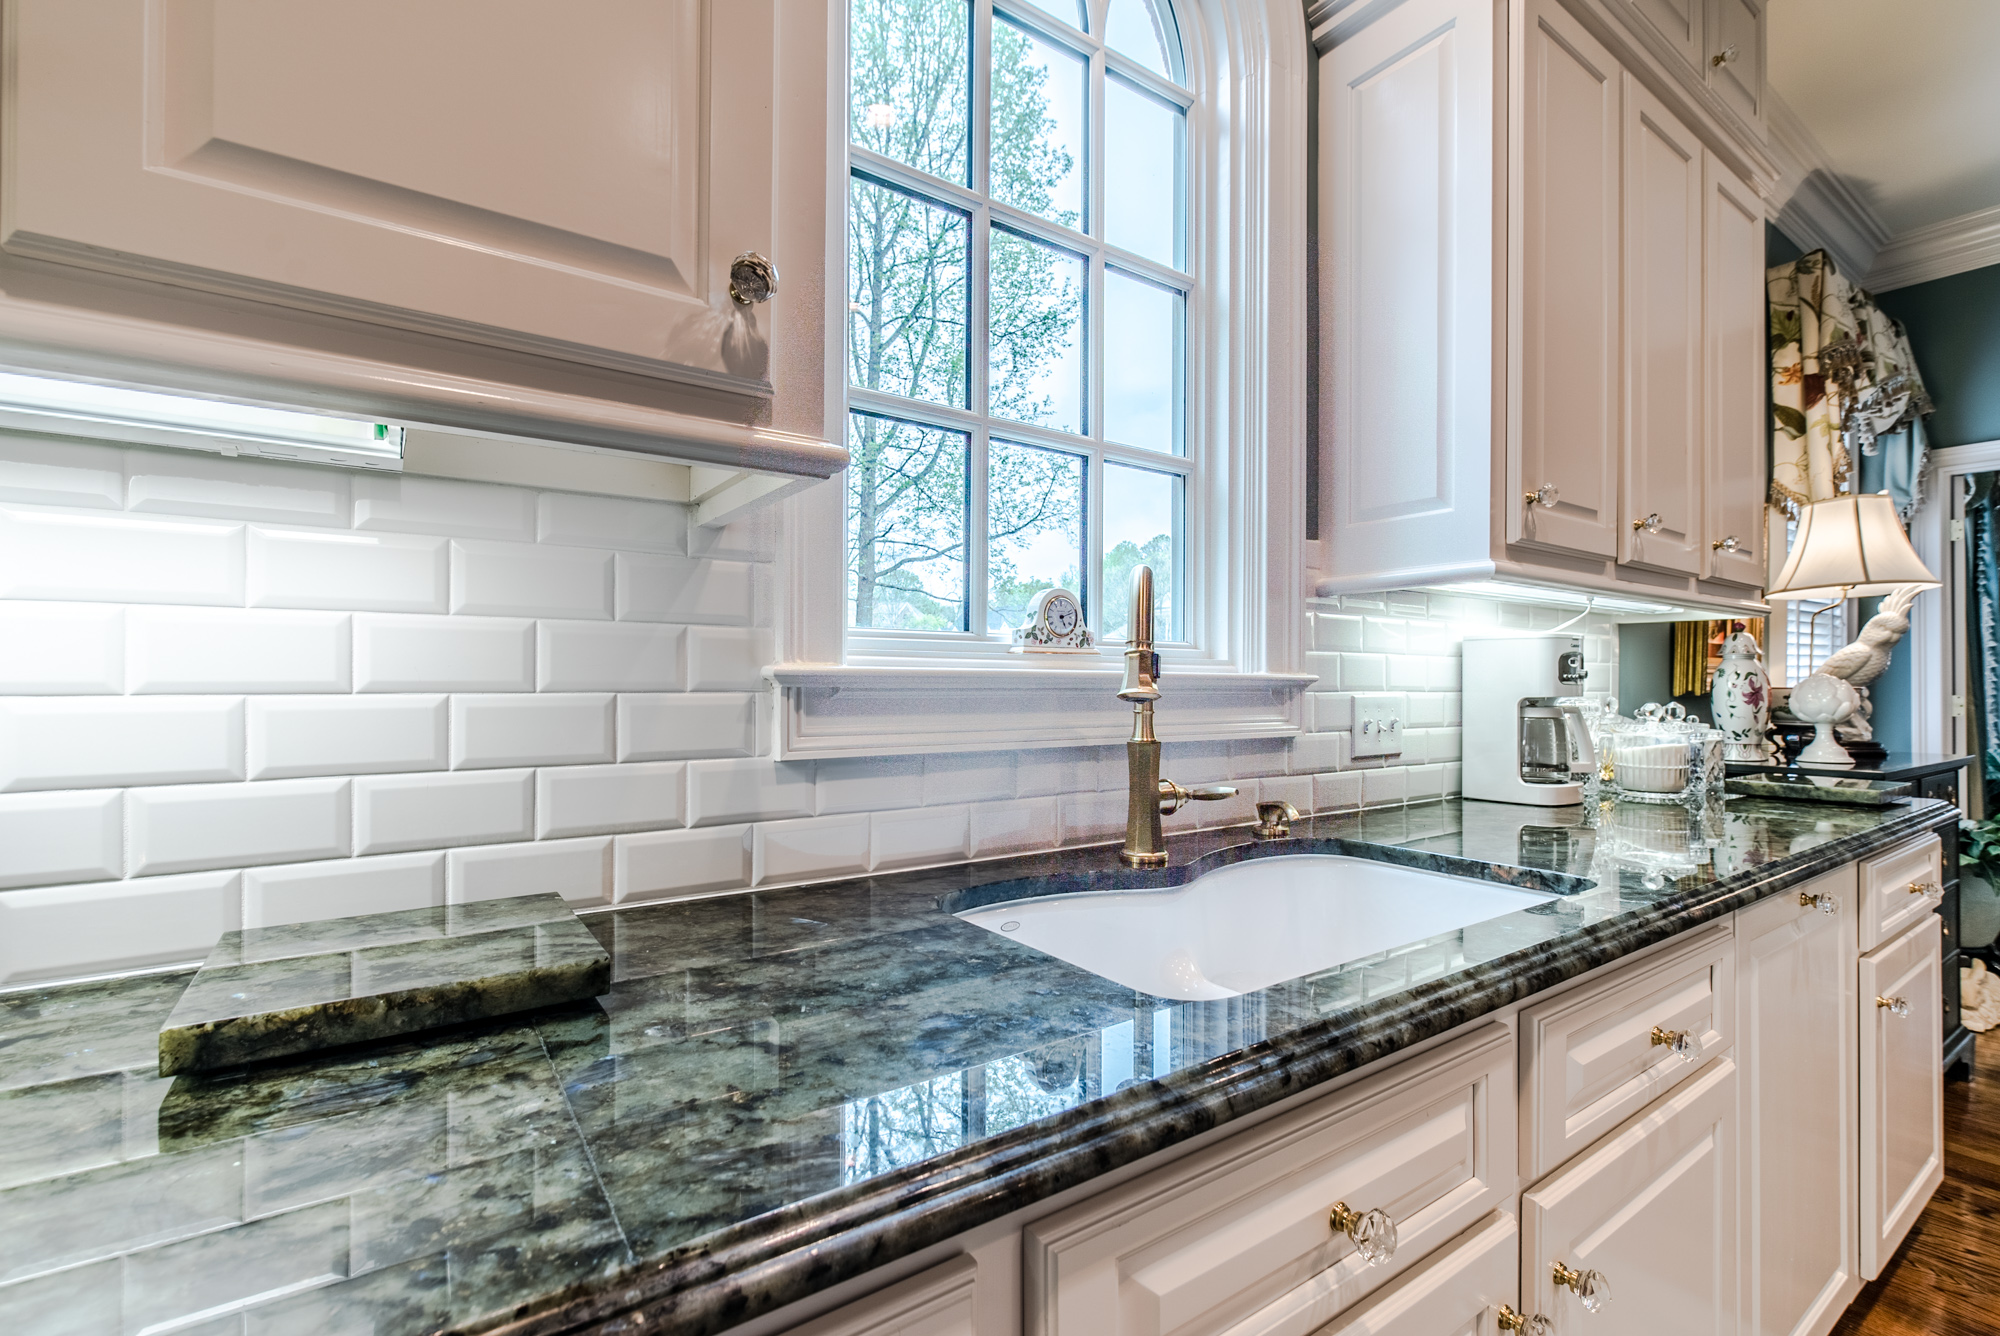 Subway tile backsplash with white subway tiles at East Coast Granite